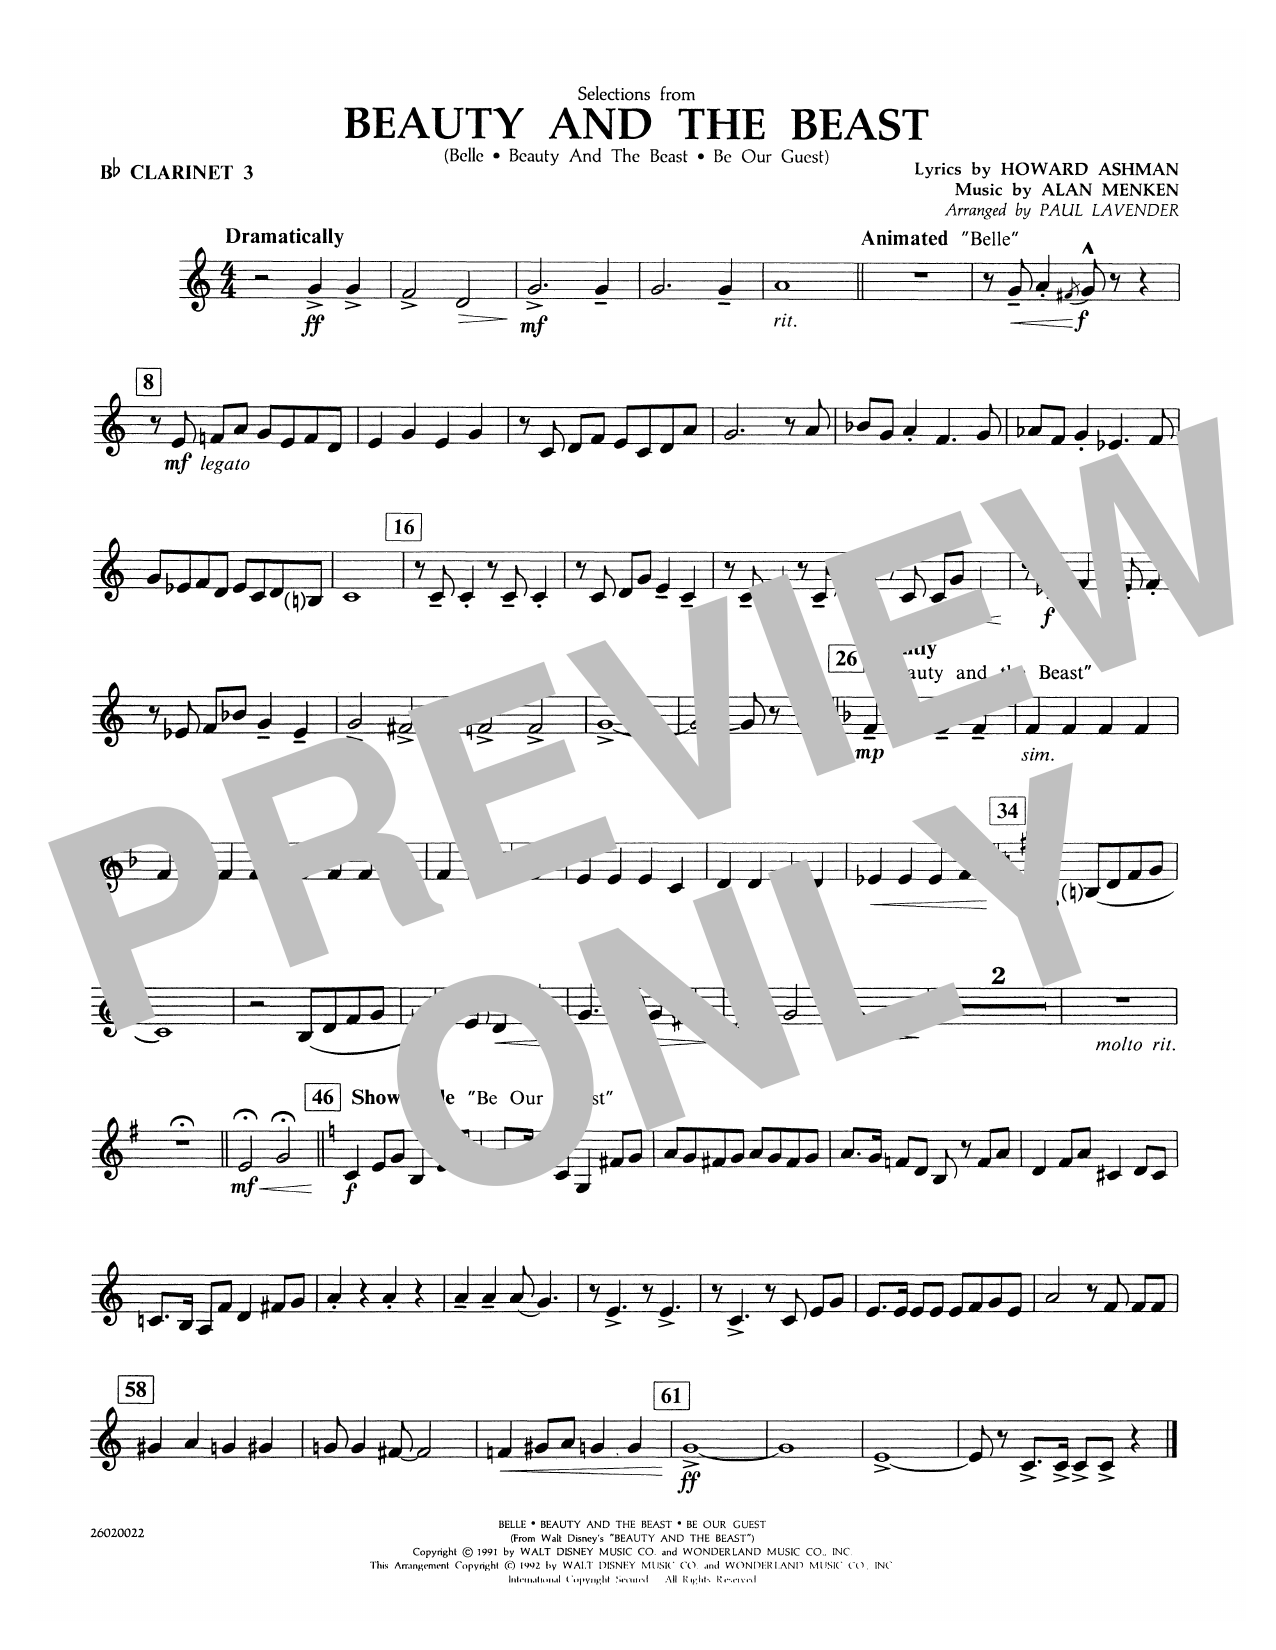 Paul Lavender Selections from Beauty and the Beast - Bb Clarinet 3 sheet music notes and chords. Download Printable PDF.